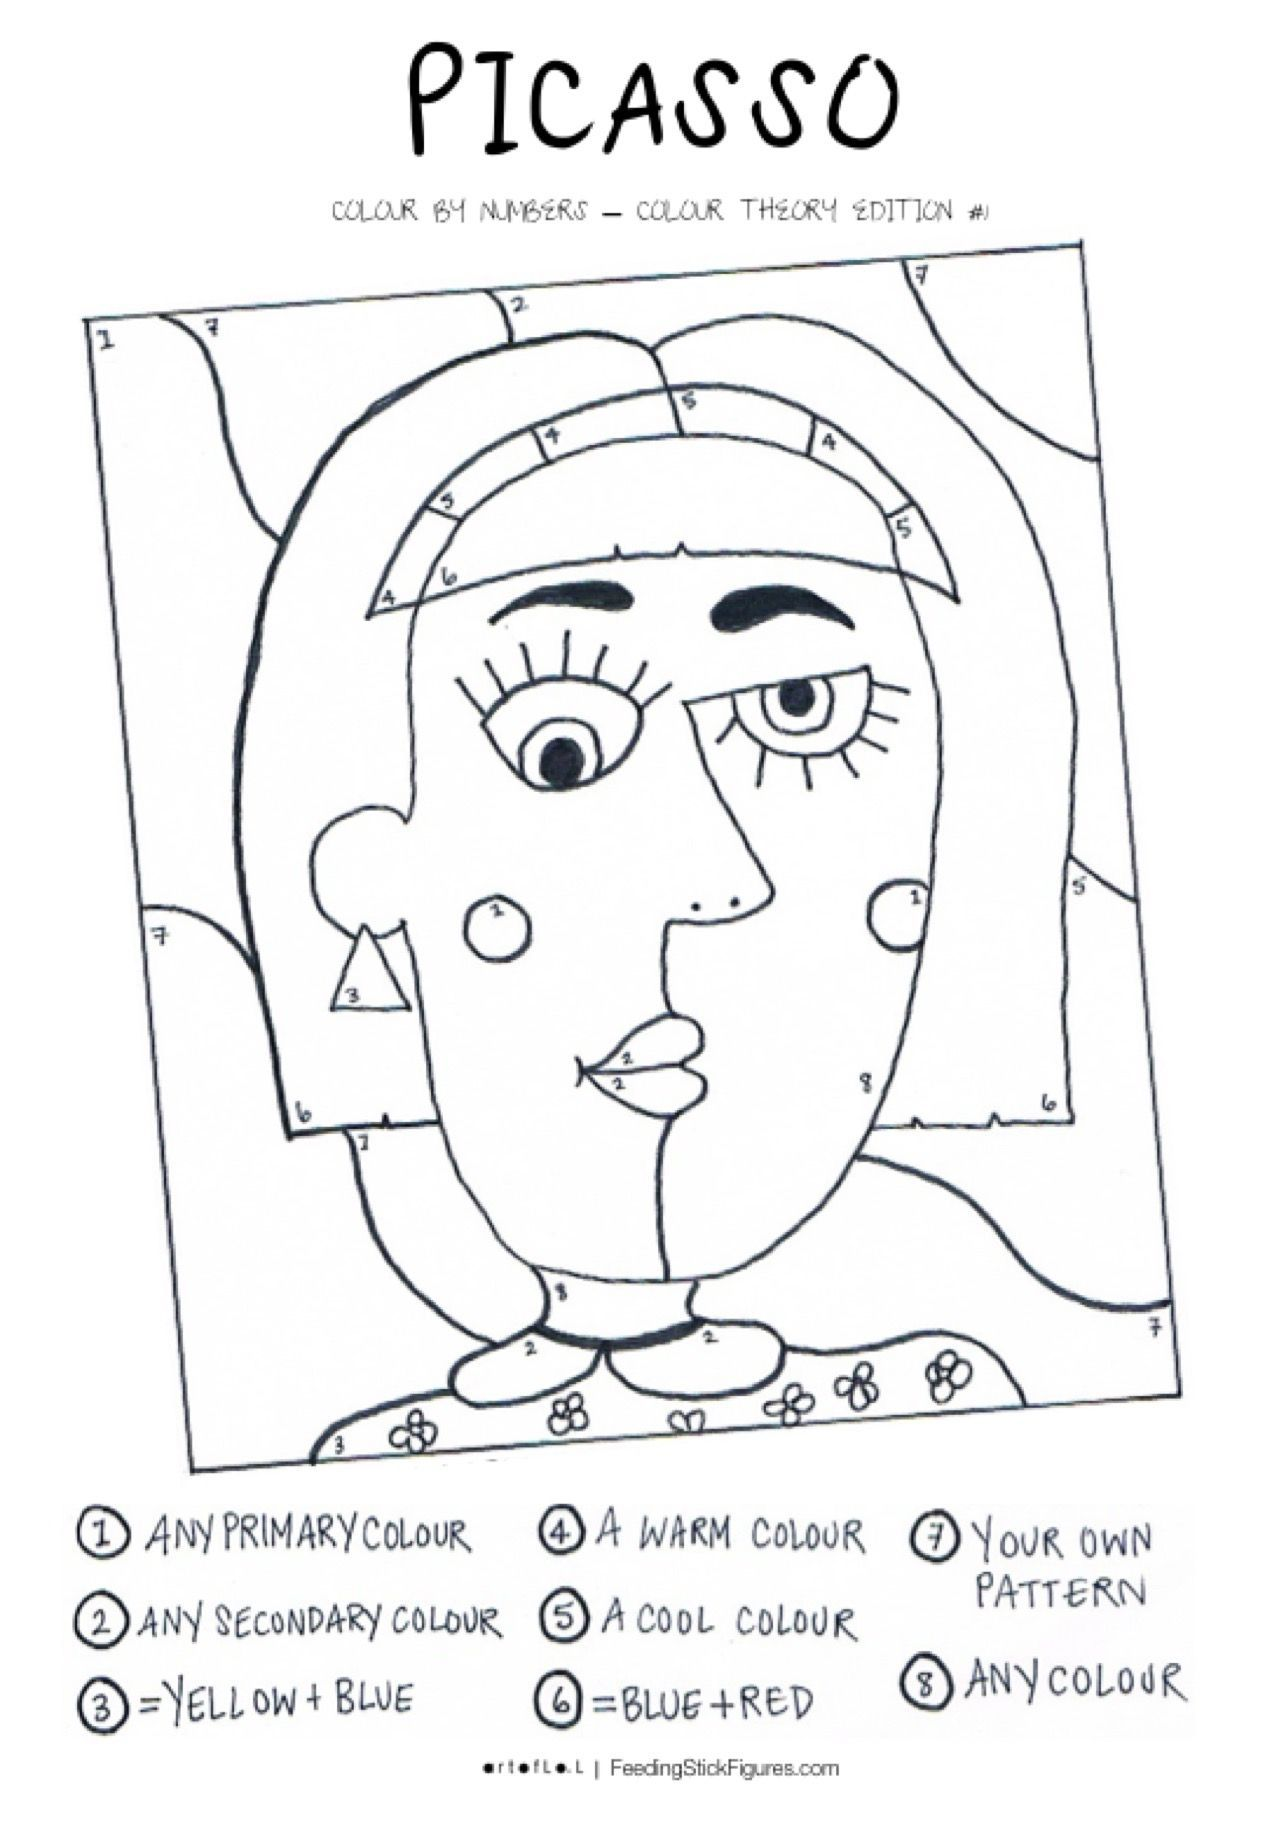 A Fun Colouring Page Activity For Kids To Review The